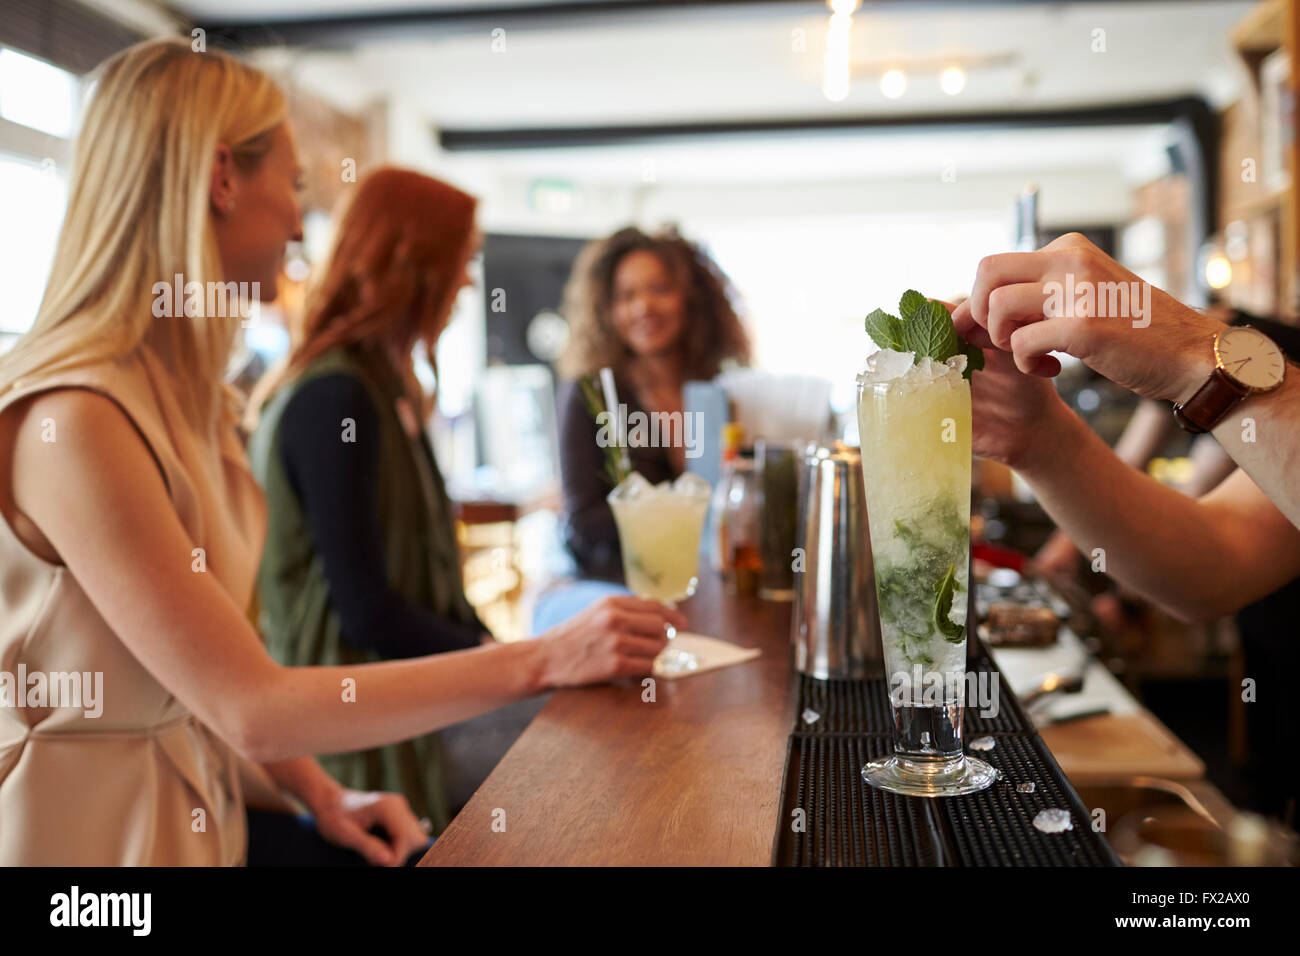 Barman Making Mojito Cocktail With Customers In Background - Stock Image